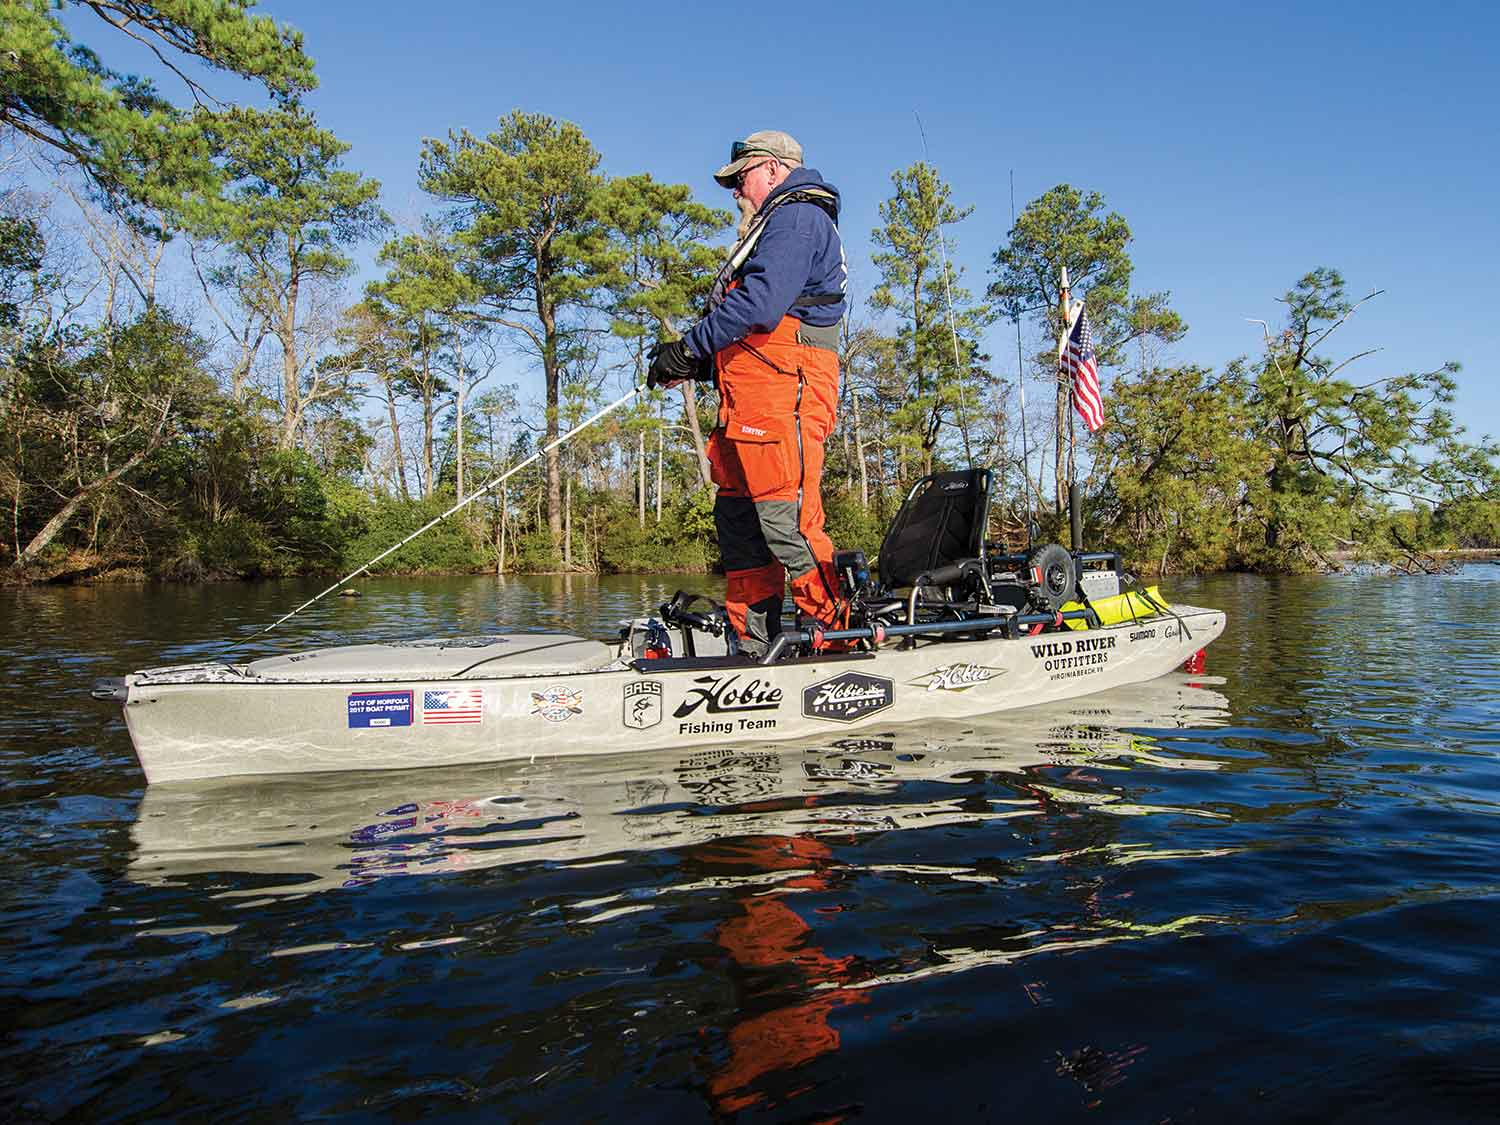 Pro Angler 14 with MirageDrive 180